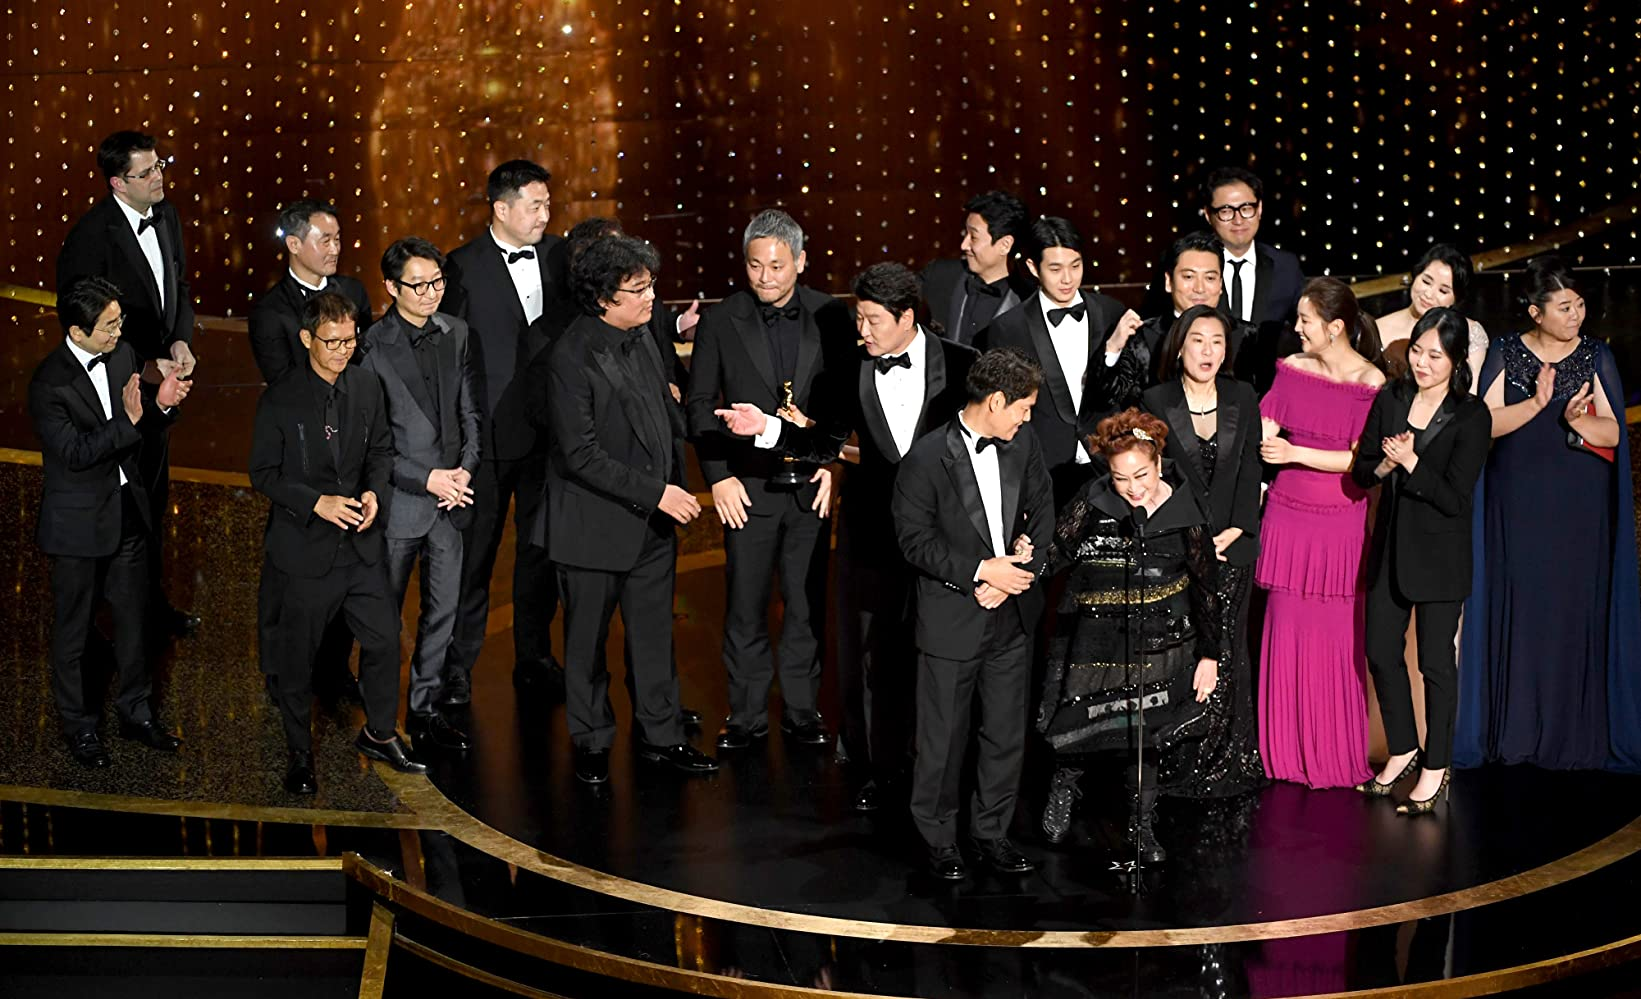 Bong Joon Ho, Kang-ho Song, Sun-kyun Lee, Yeo-jeong Jo, Yang-kwon Moon, Ha-jun Lee, So-dam Park, and Jin Won Han at an event for The Oscars (2020)